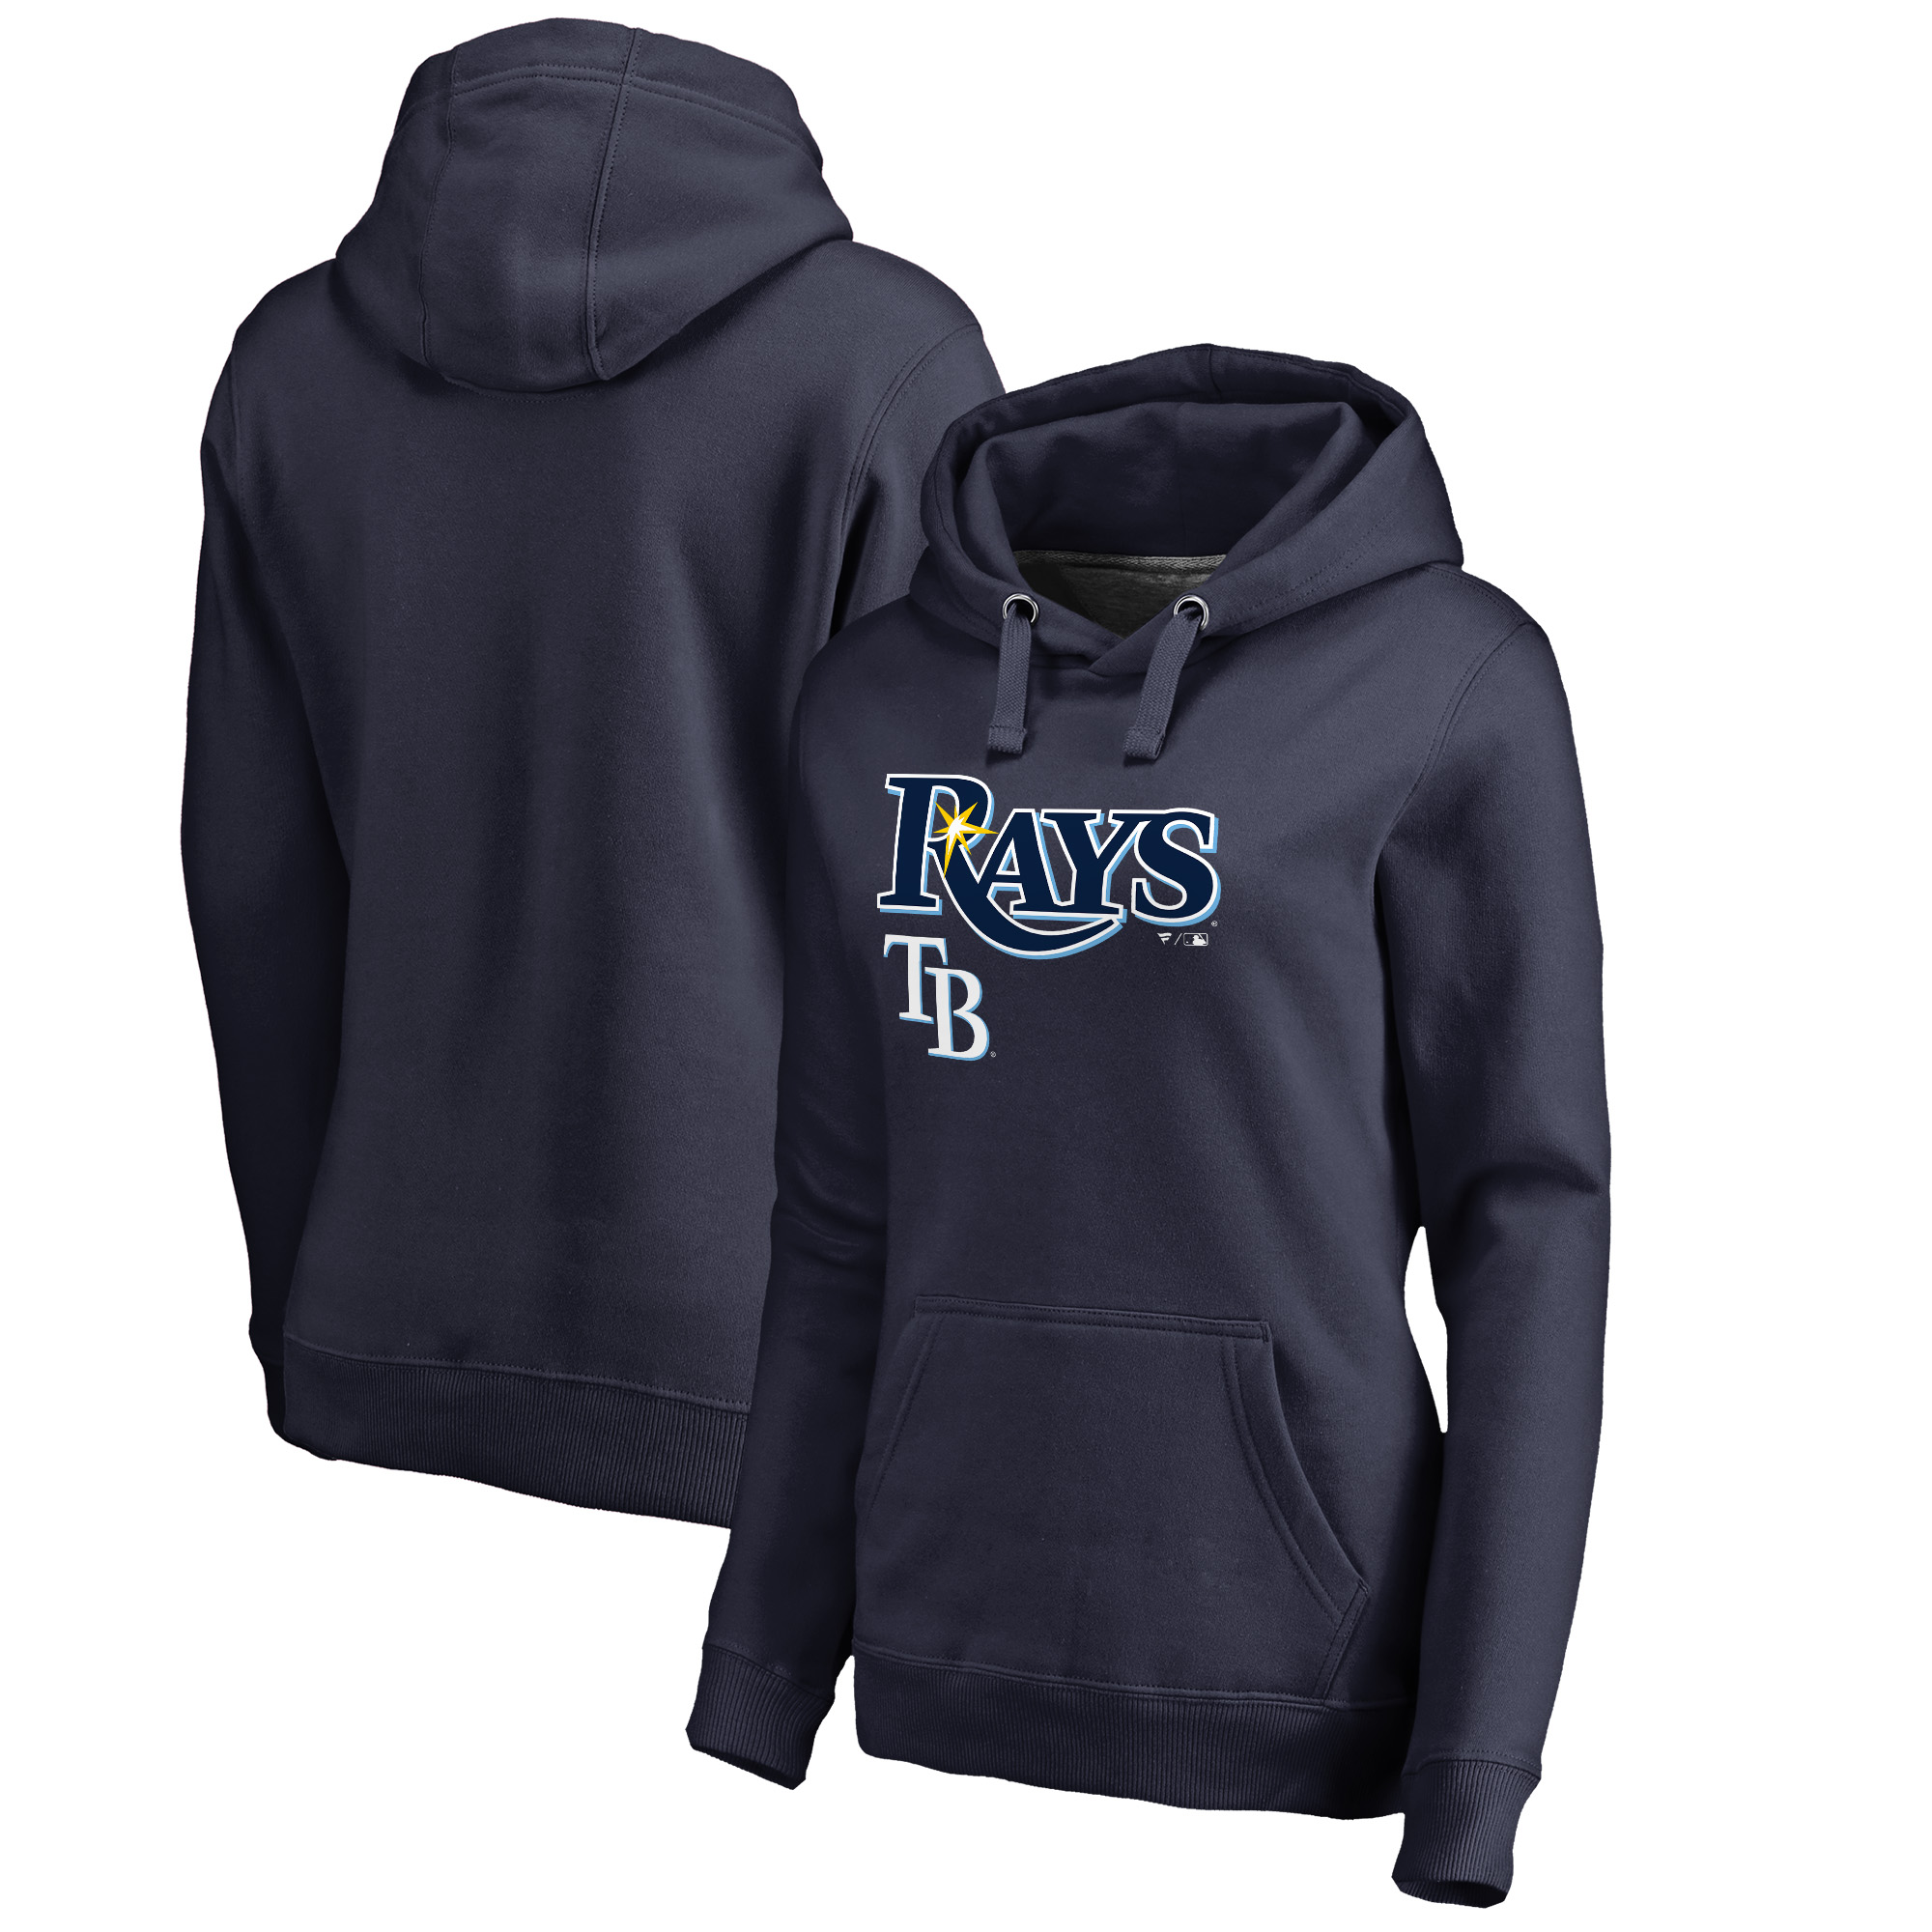 Tampa Bay Rays Fanatics Branded Women's Team Lockup Pullover Hoodie - Navy